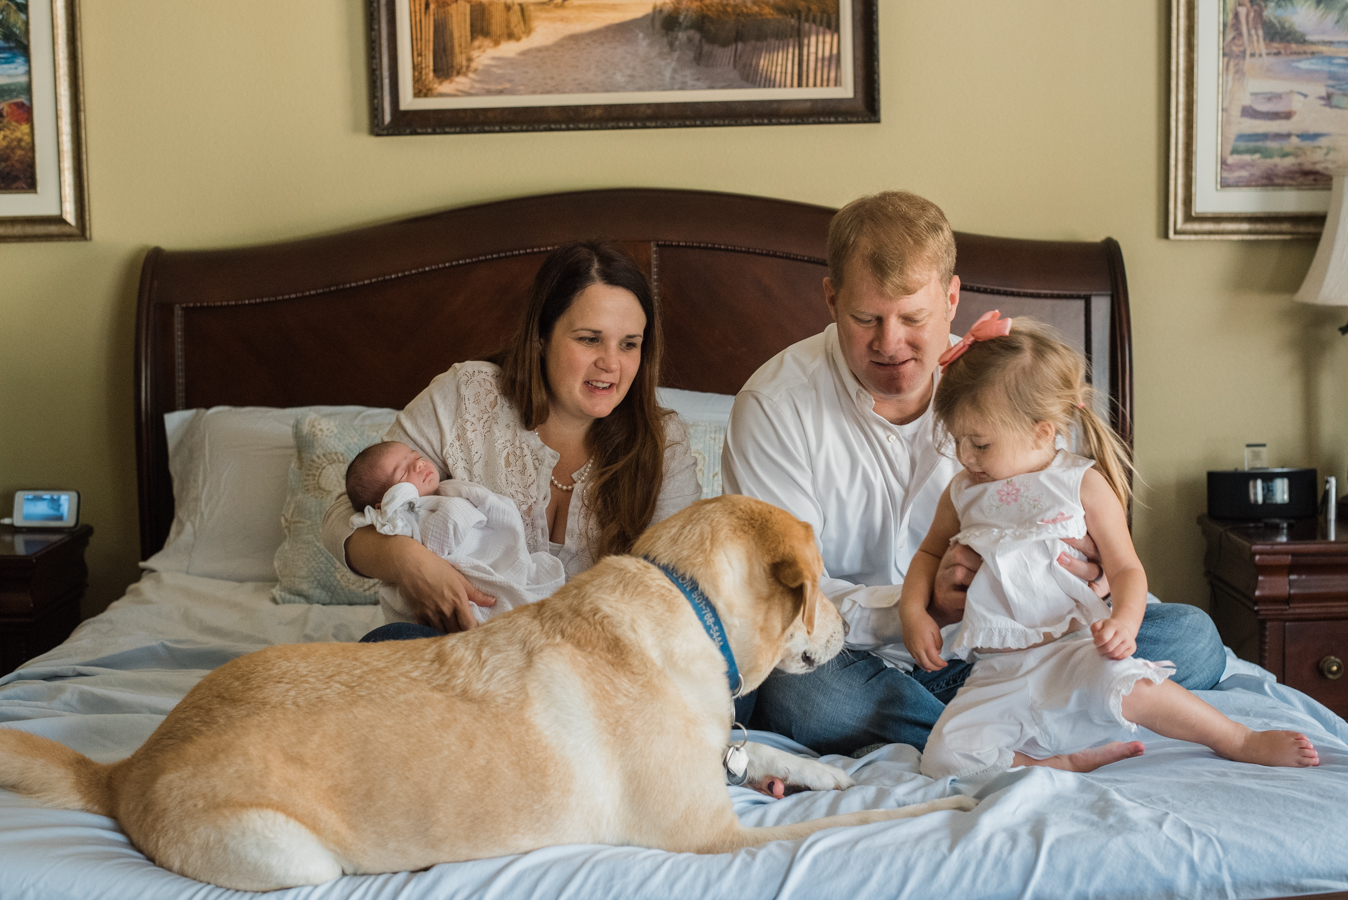 family on bed with dog-Pensacola newborn photographer